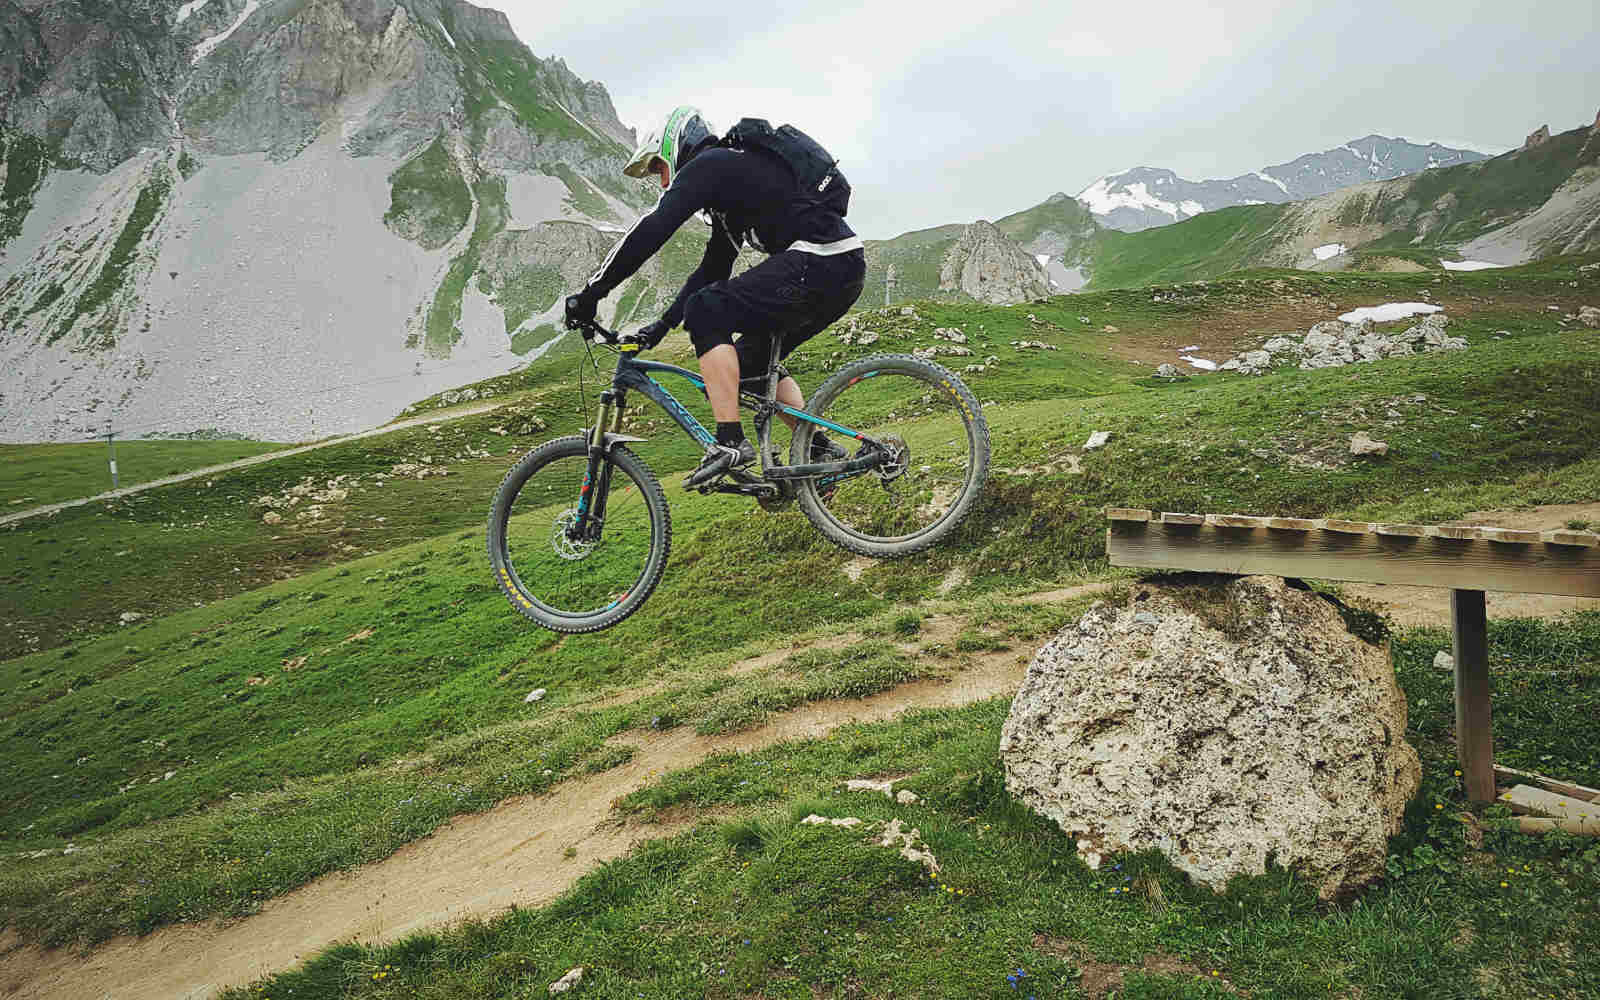 Jumping drop off downhill mtb Tignes